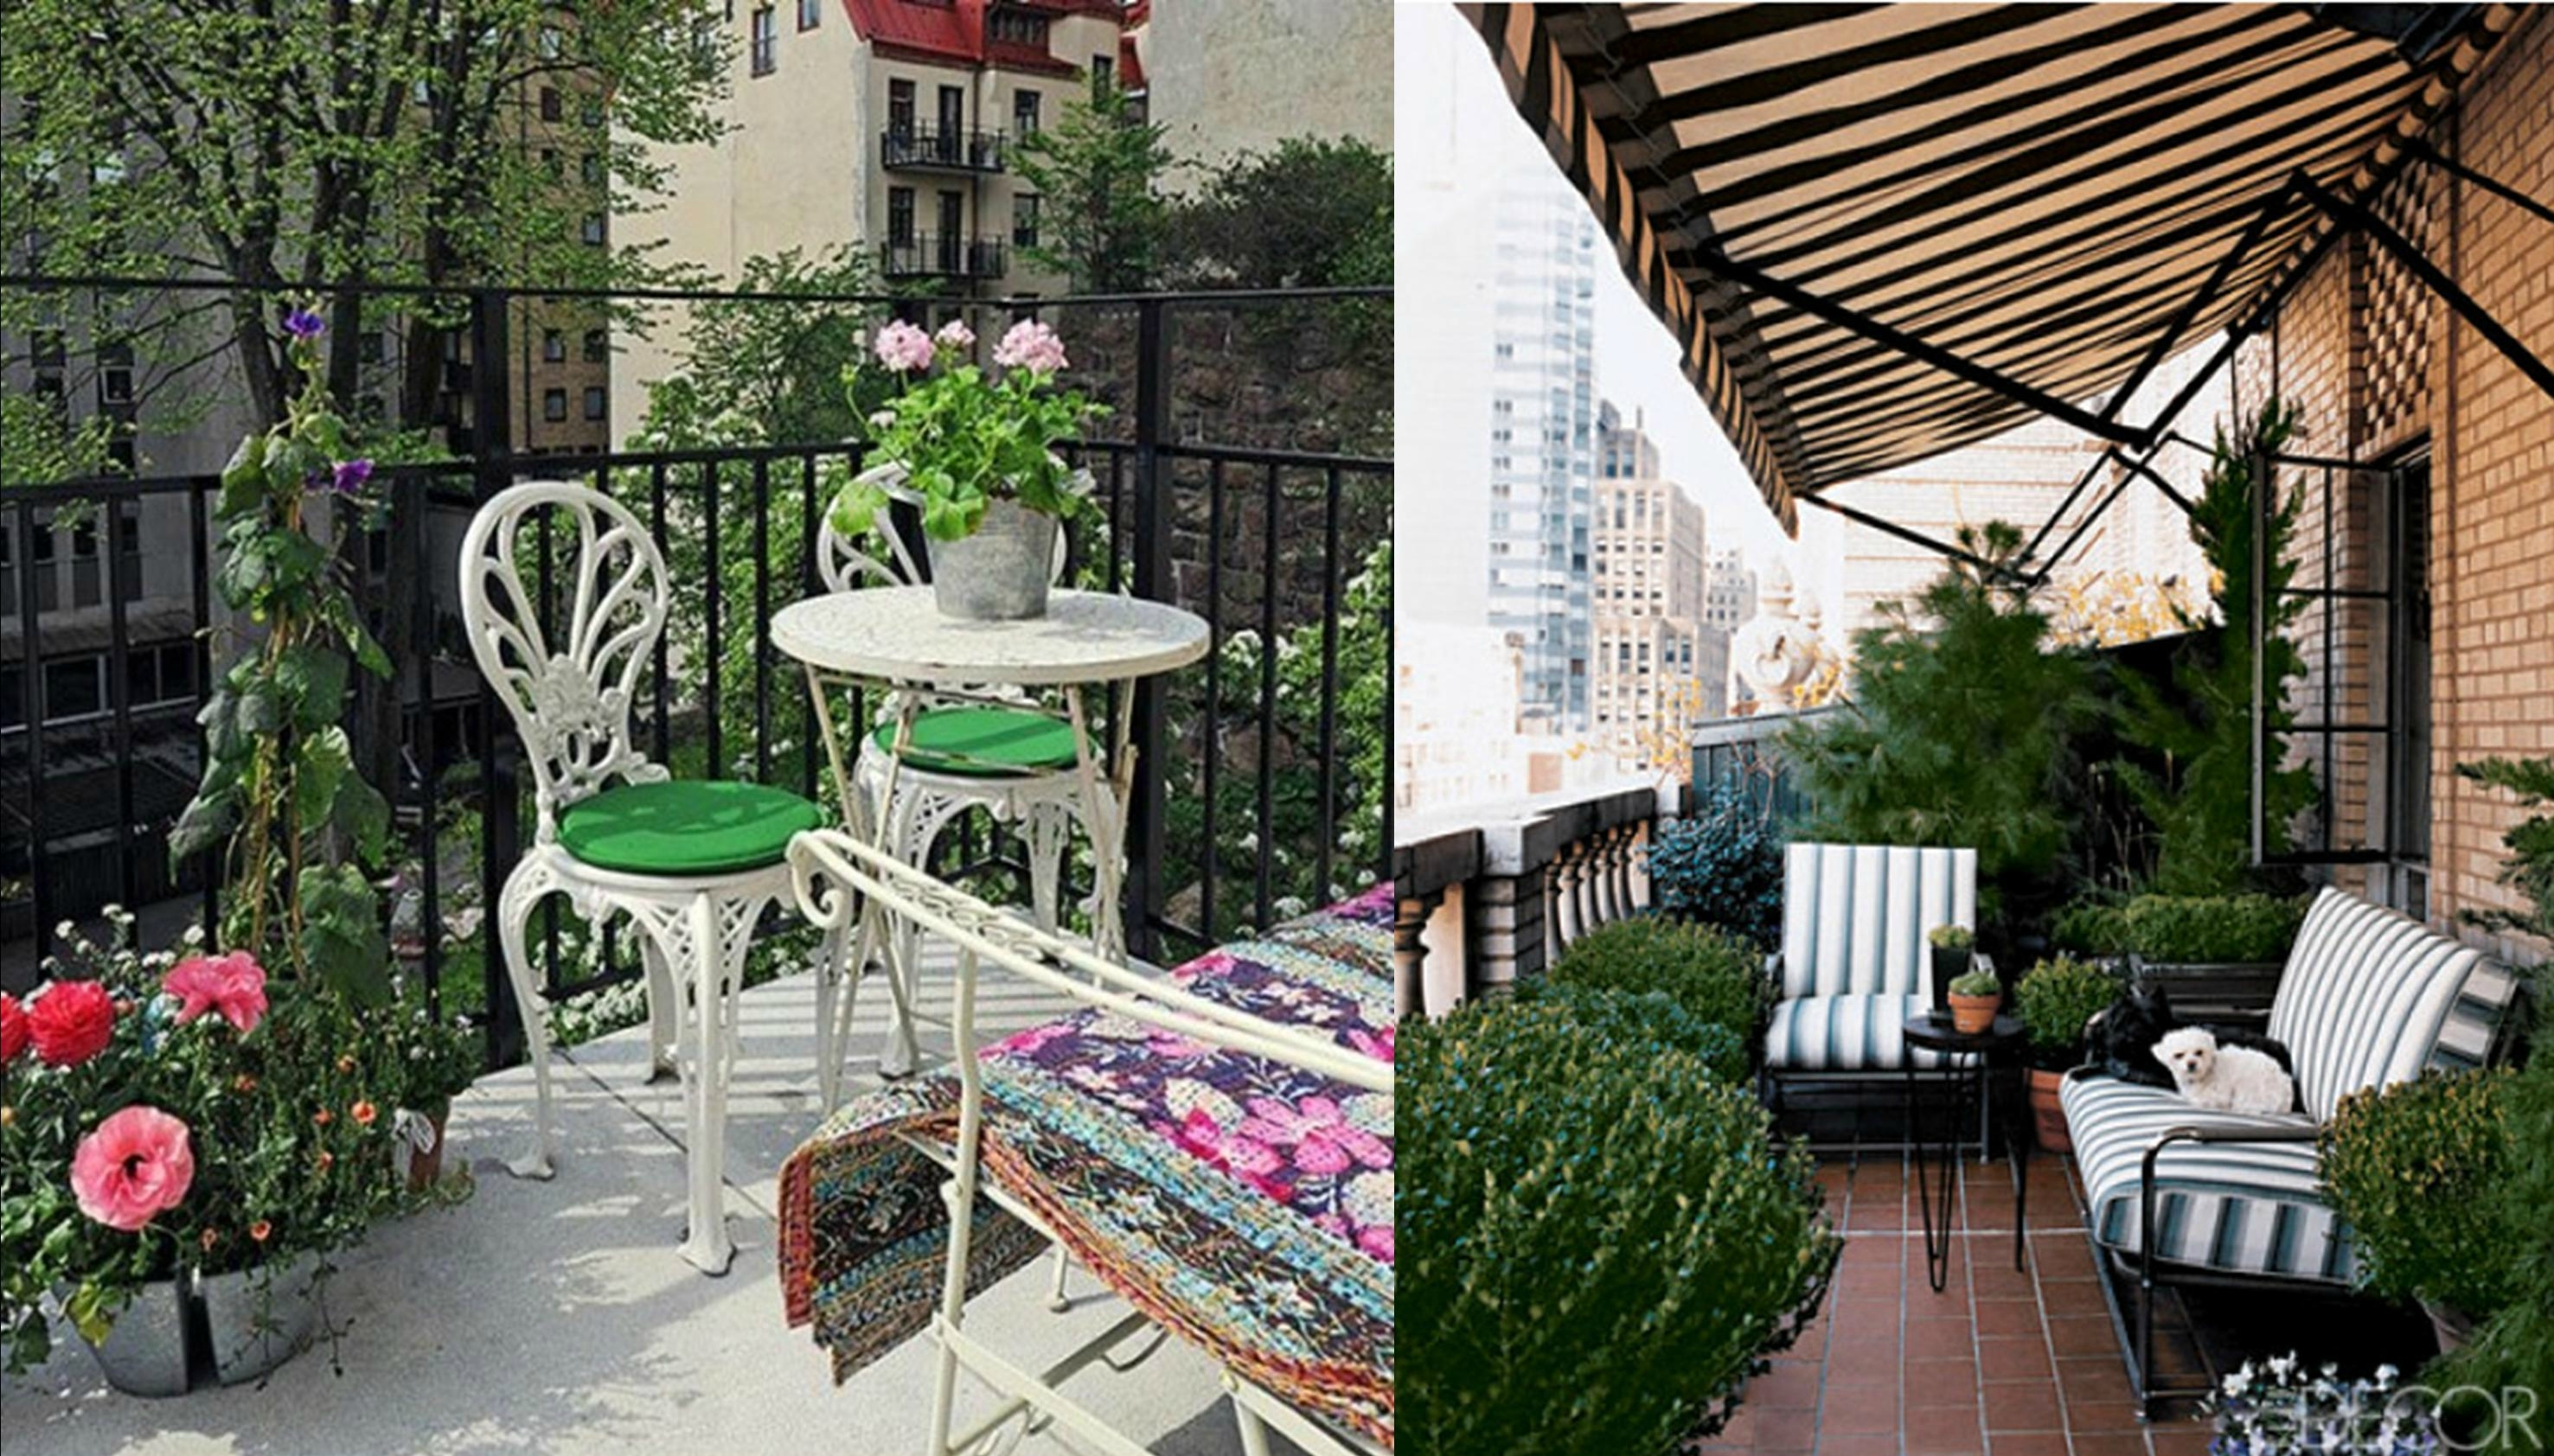 Apartment Balcony Garden Also Via Apartment Therapy Again Loving throughout Best Apartment With Garden Design Ideas